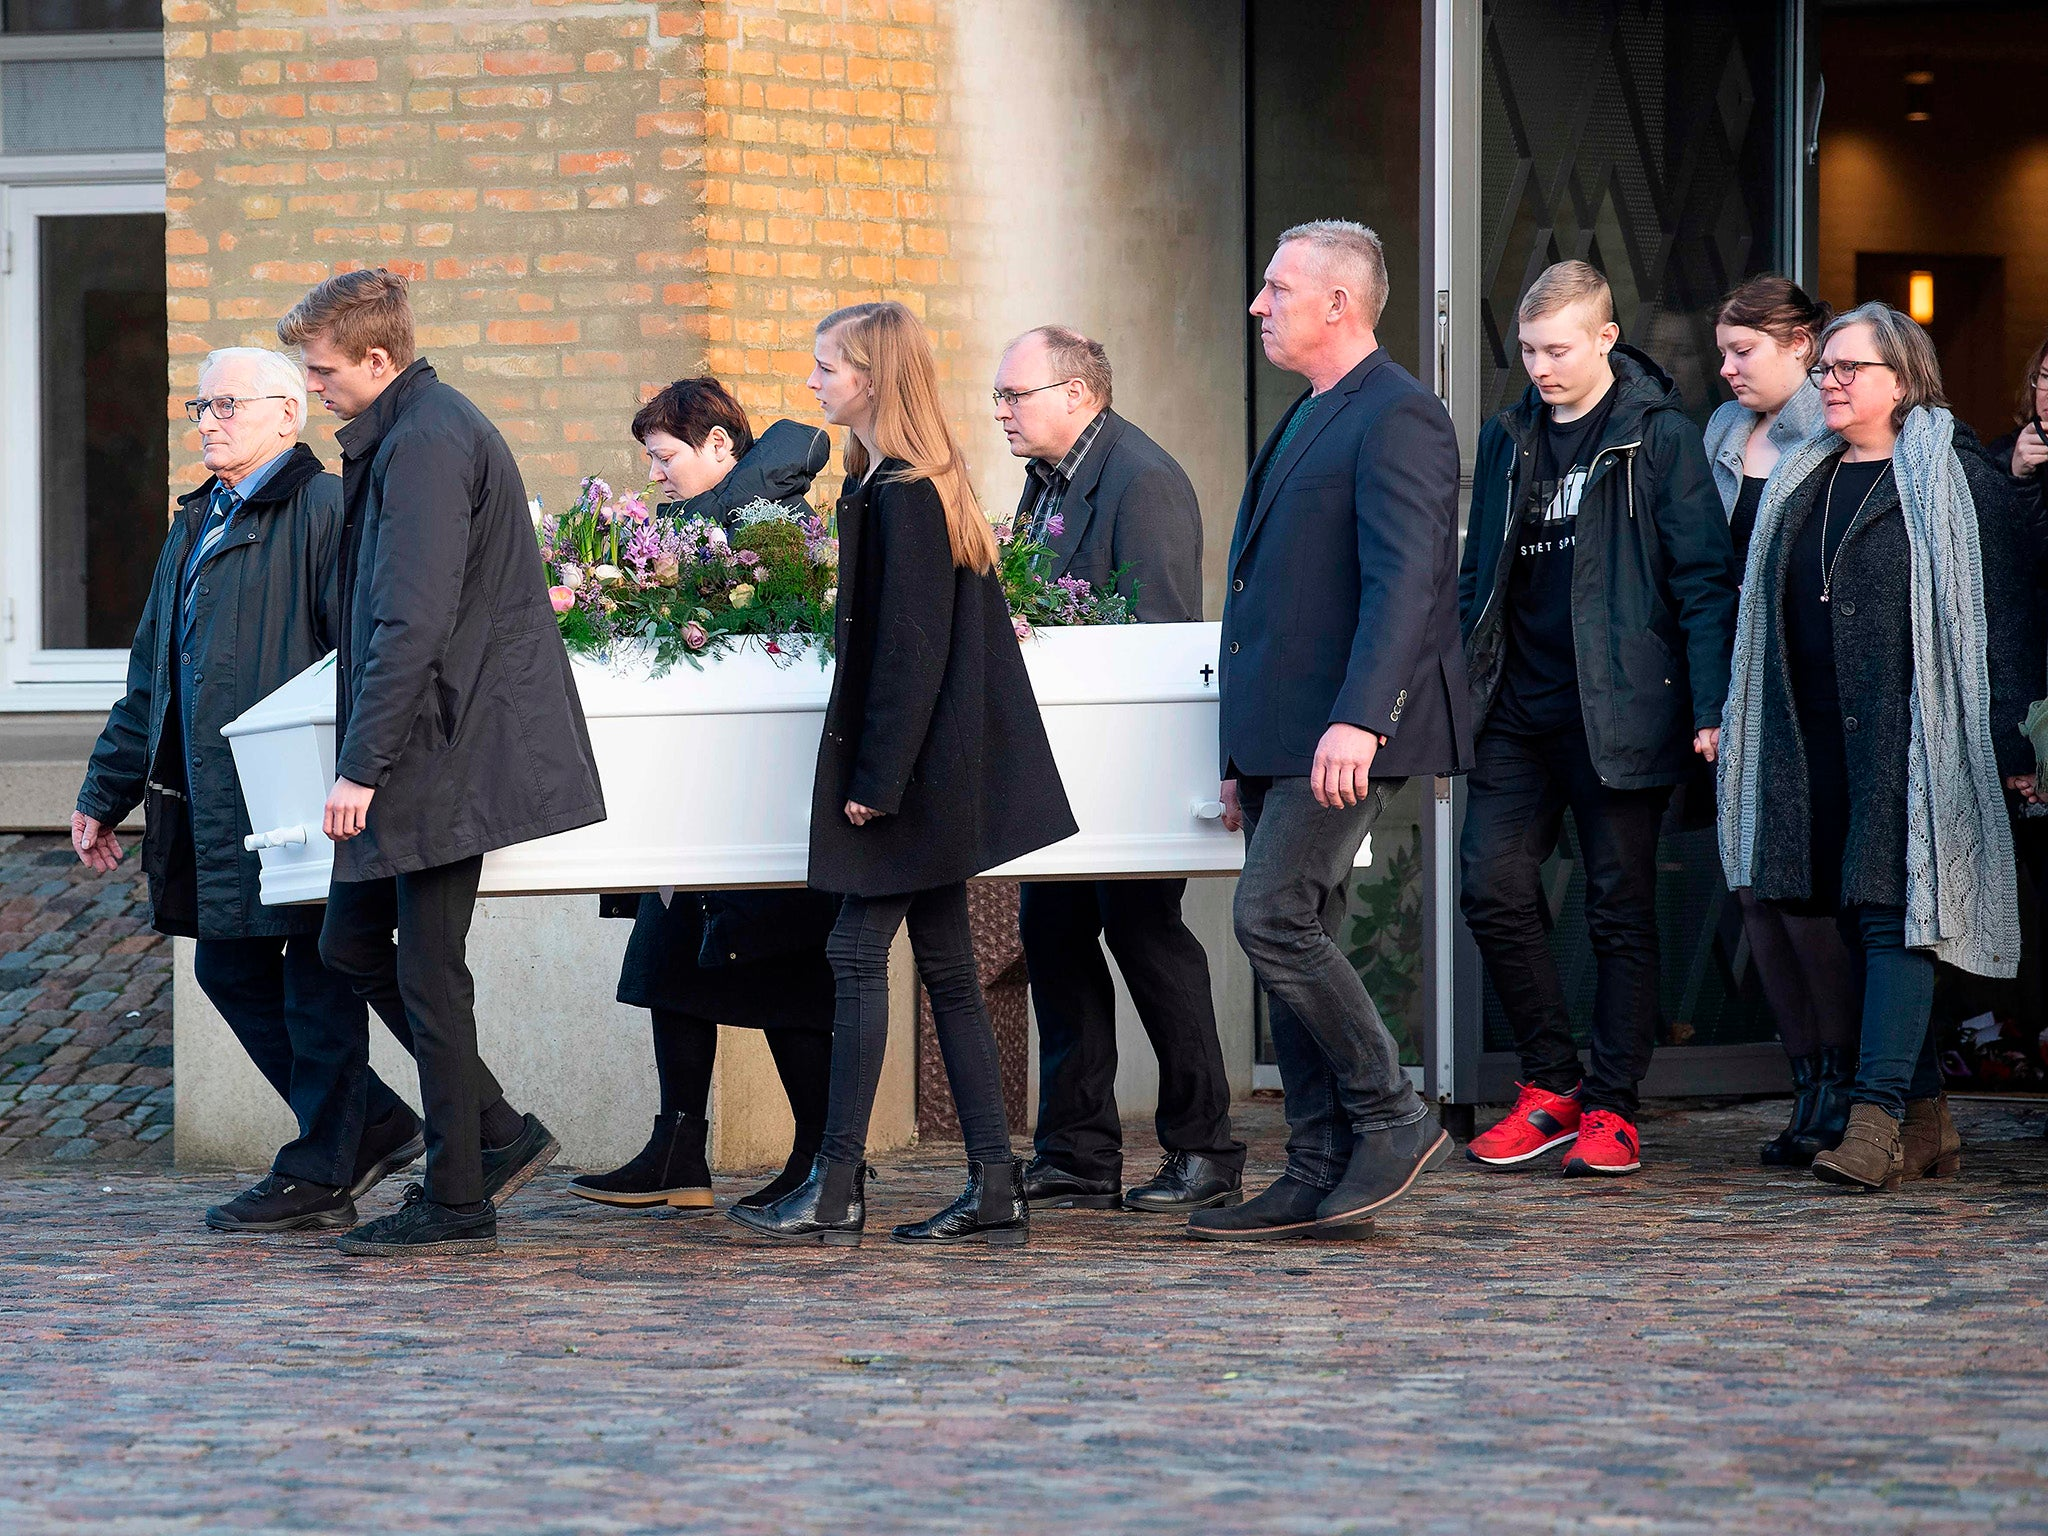 Danish PM attends funeral for tourist murdered in Morocco